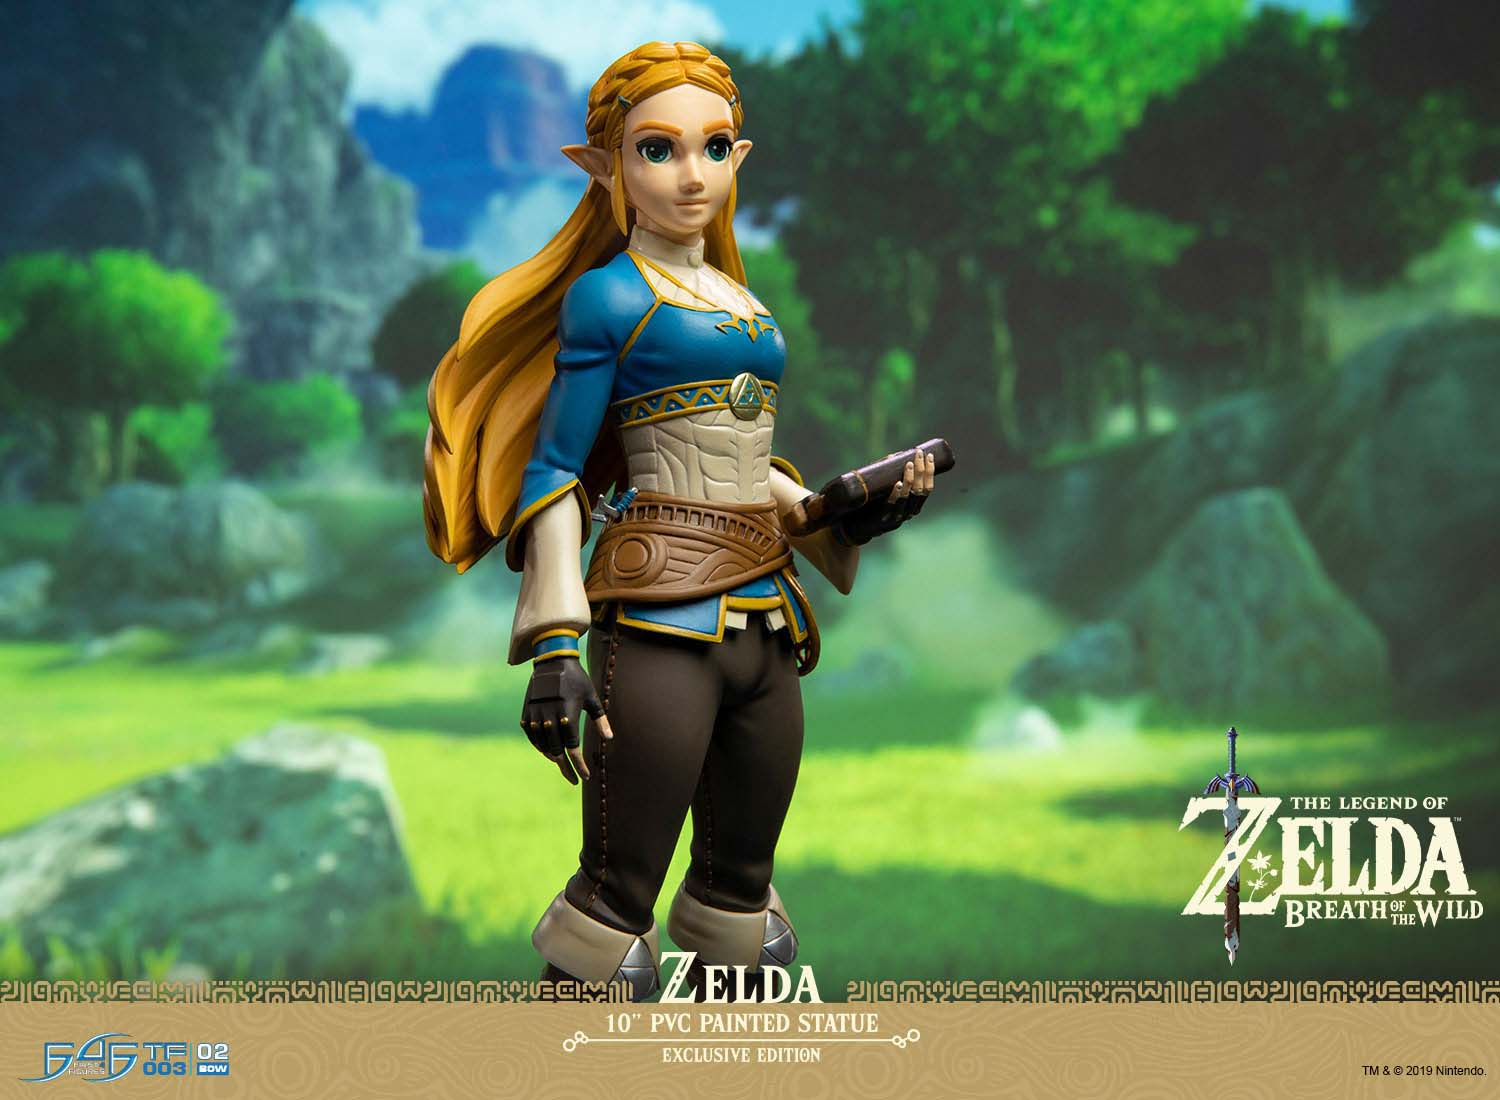 The Legend of Zelda: Breath of the Wild – Zelda Statue (Exclusive Edition)